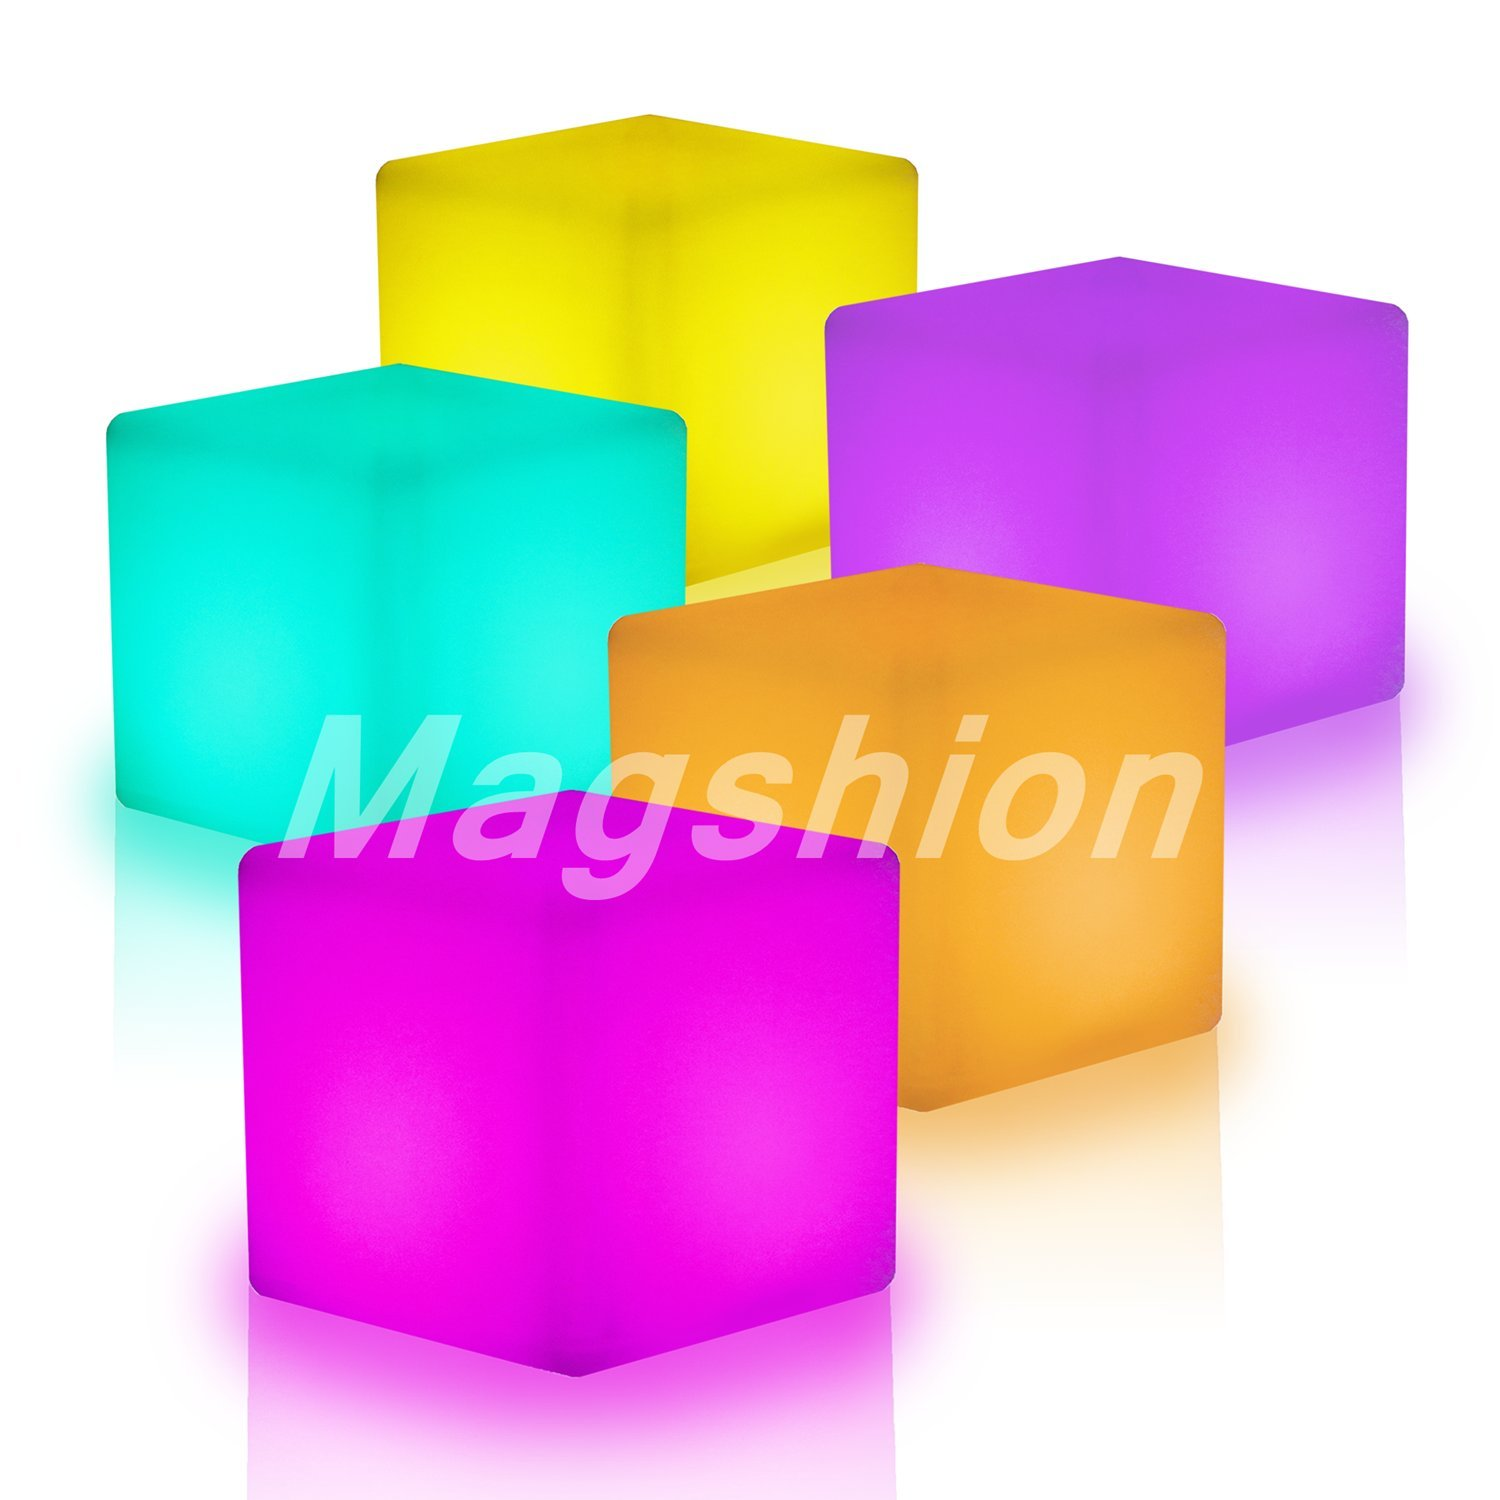 MagshionIlluminated Cocktail Tables Chair Color-Changing LED Lighting Stool NightStands Chair Table by Magshion Furniture